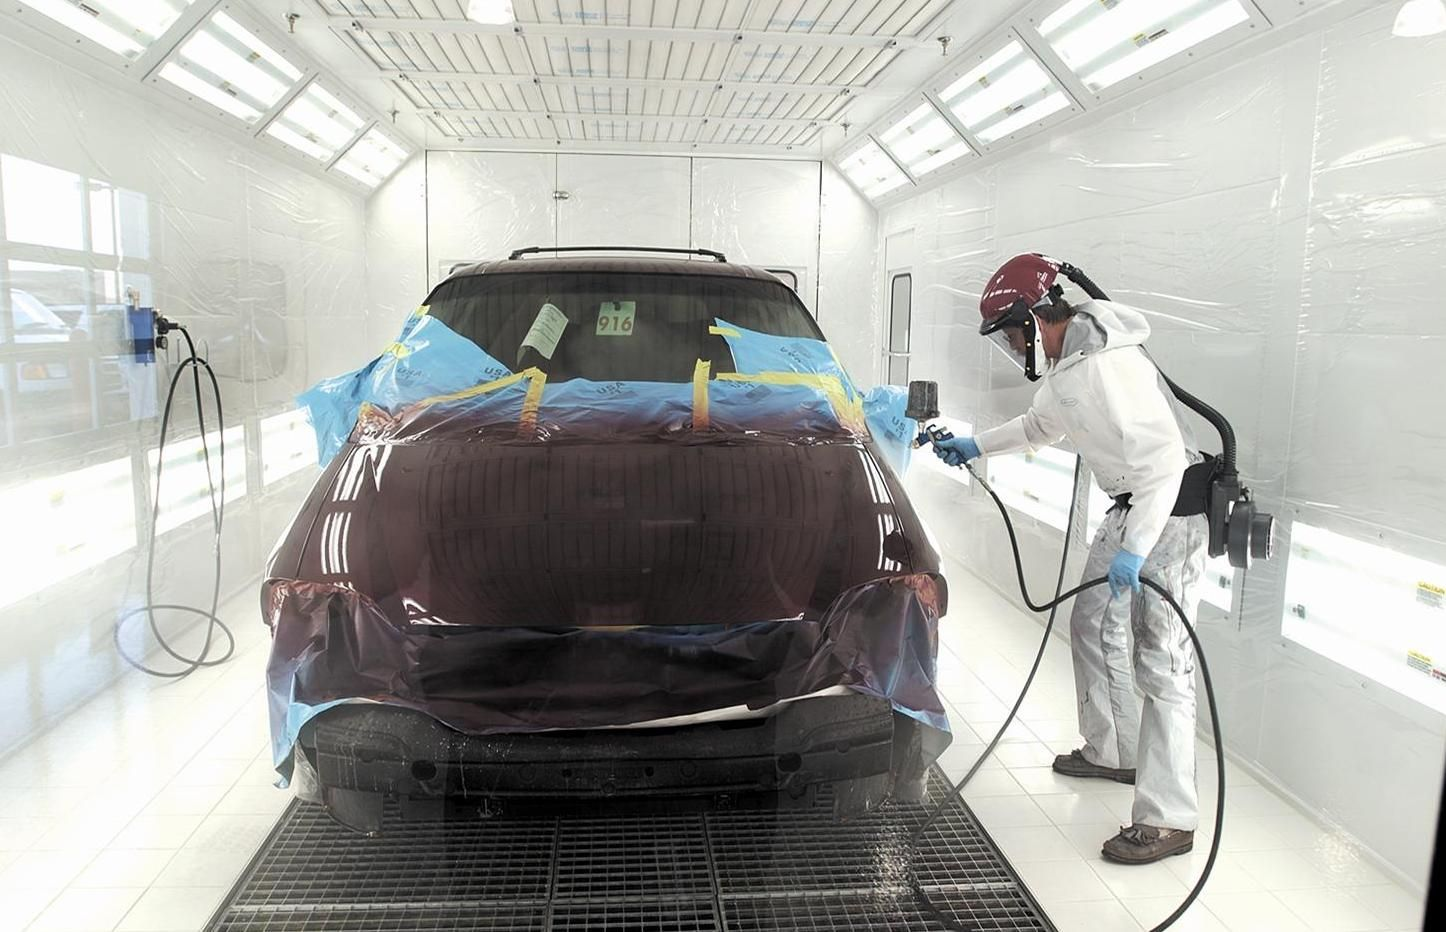 Finding A Professional Auto Body Shop In Fresno Is Hard It Takes Time Patience And Experience For You T Auto Body Repair Auto Body Collision Repair Auto Body